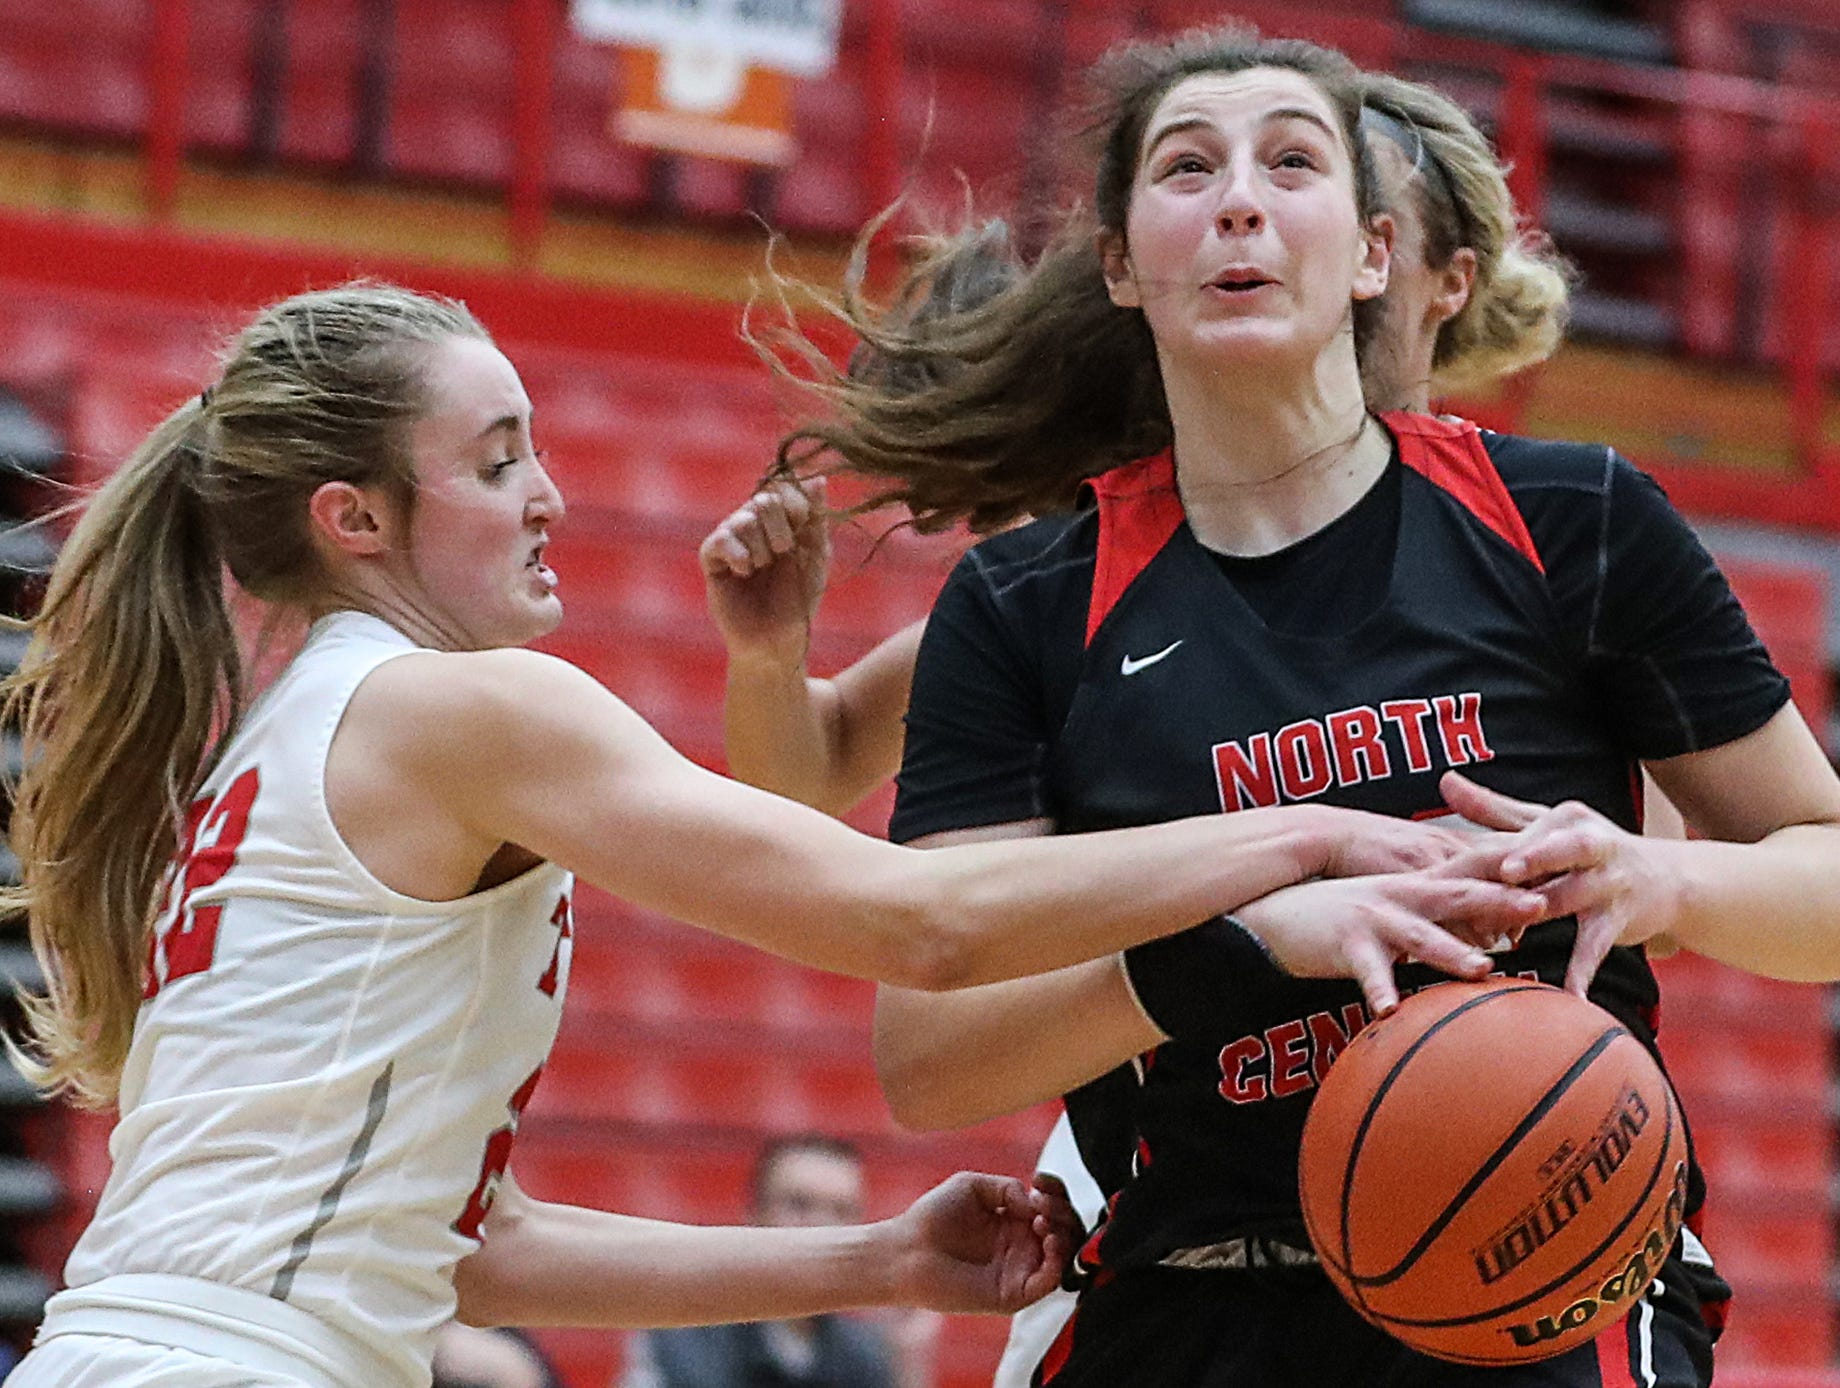 Center Grove Trojans Claire Rake (12) fouls North Central Panthers forward Meg Newman (42) in the second half of the game at Center Grove High School in Greenwood, Ind., Thursday, Jan. 10, 2019. Center Grove defeated North Central, 51-44.